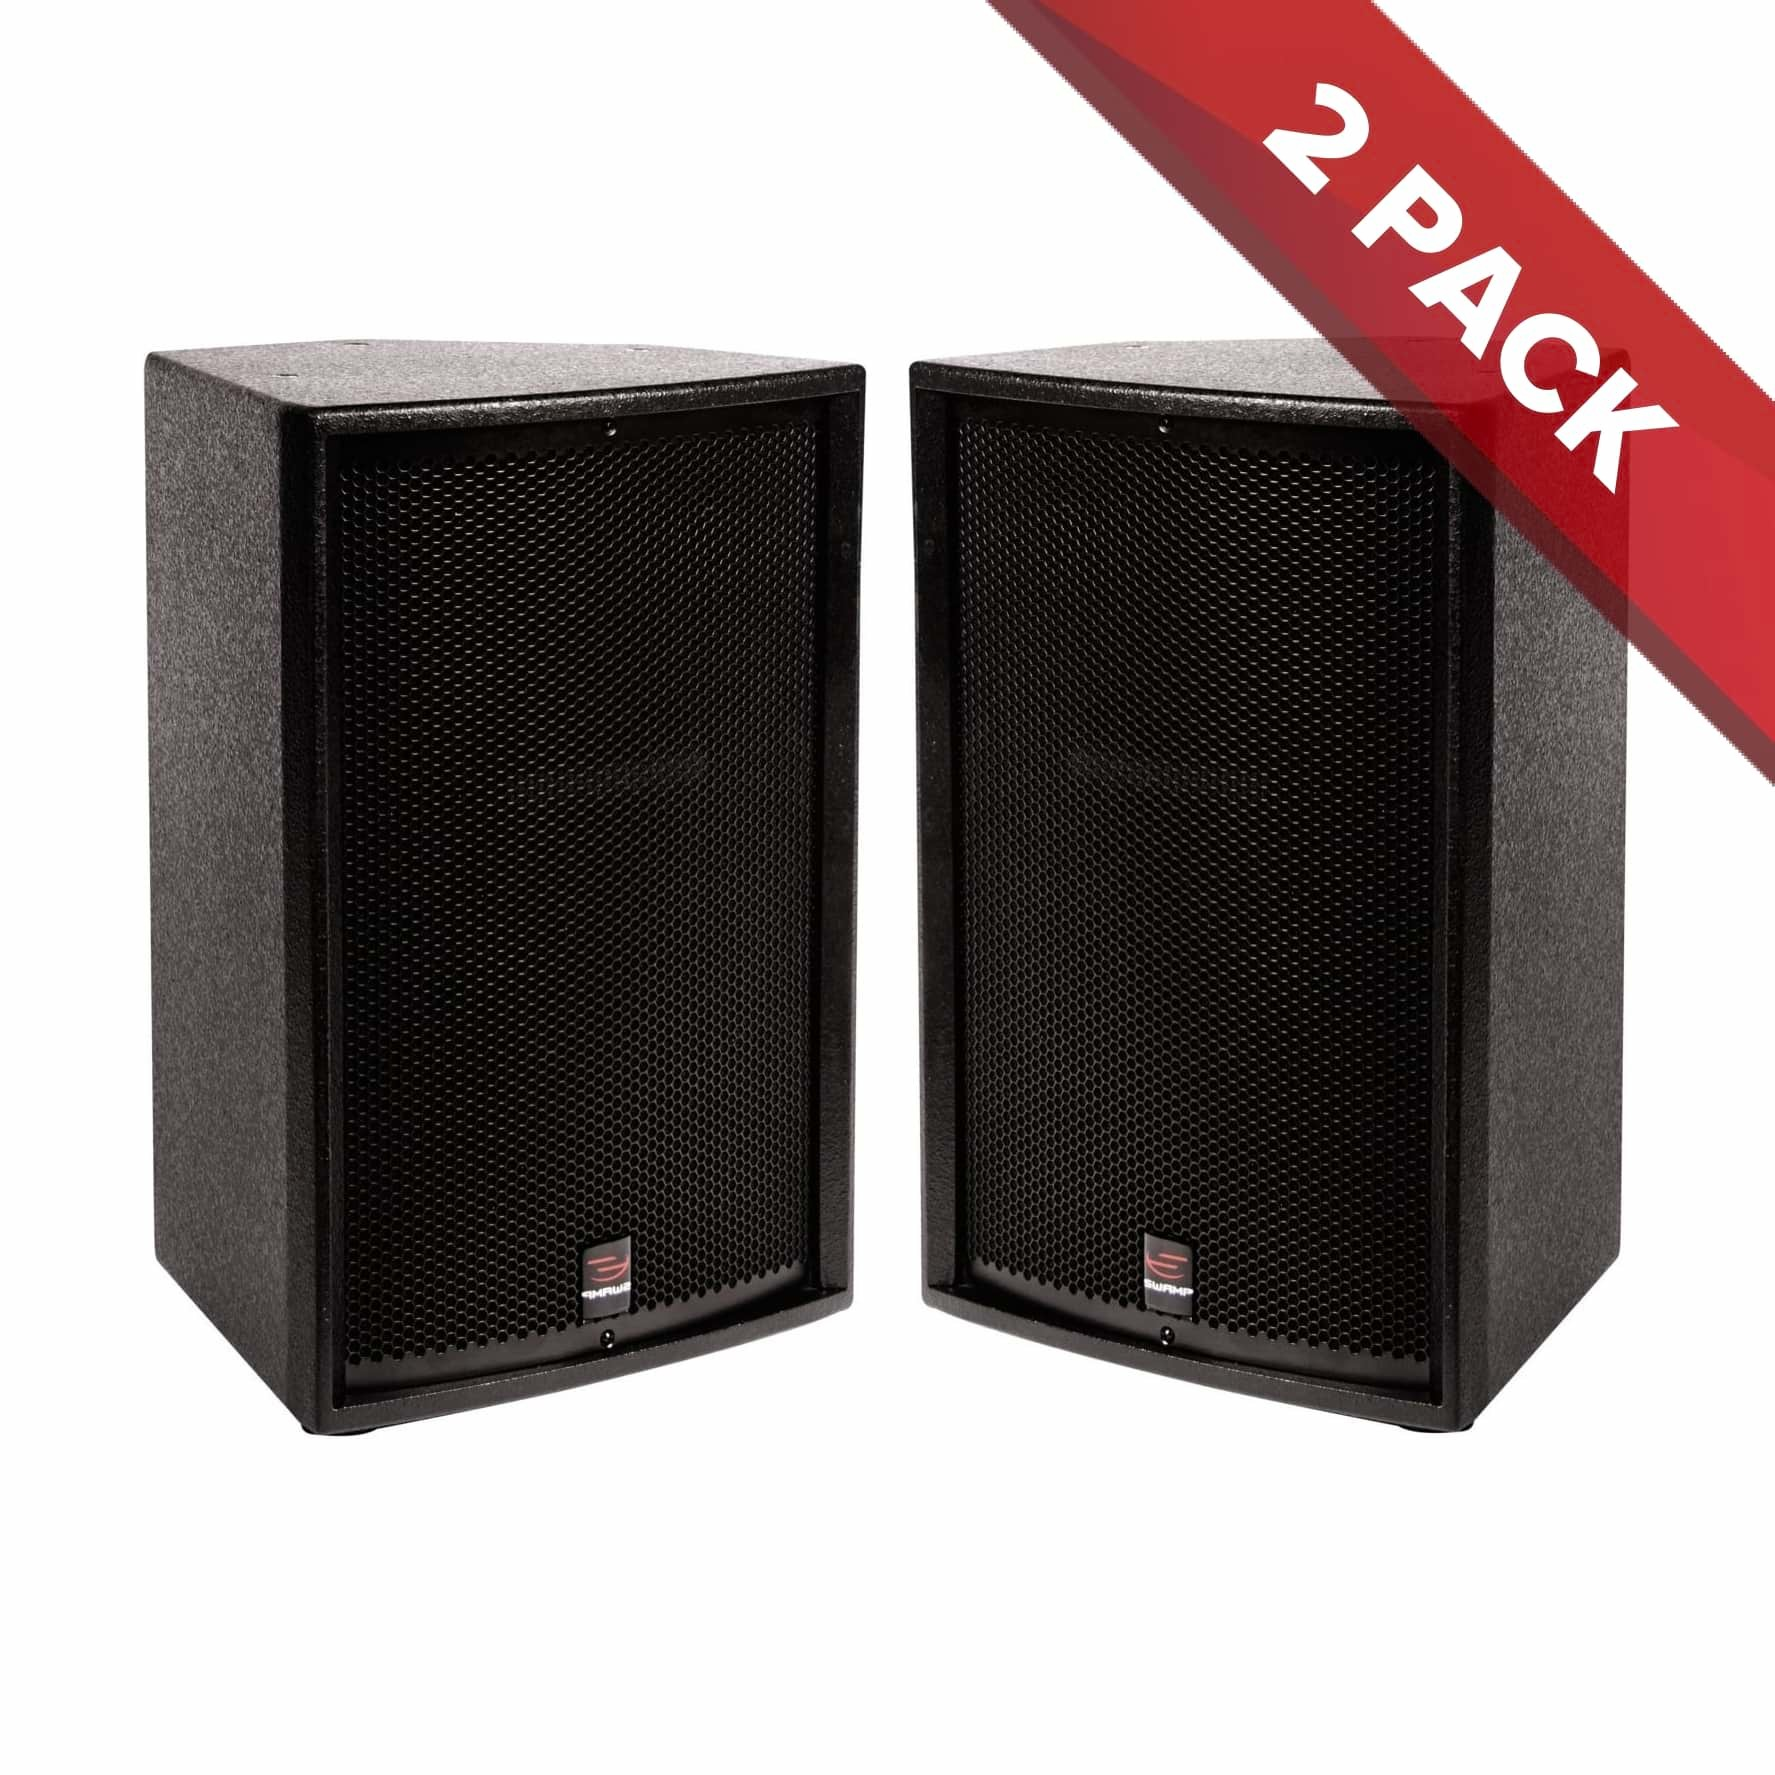 "2x SWAMP BT-12 - 2-way Passive 12"" PA Speaker - 300W RMS"